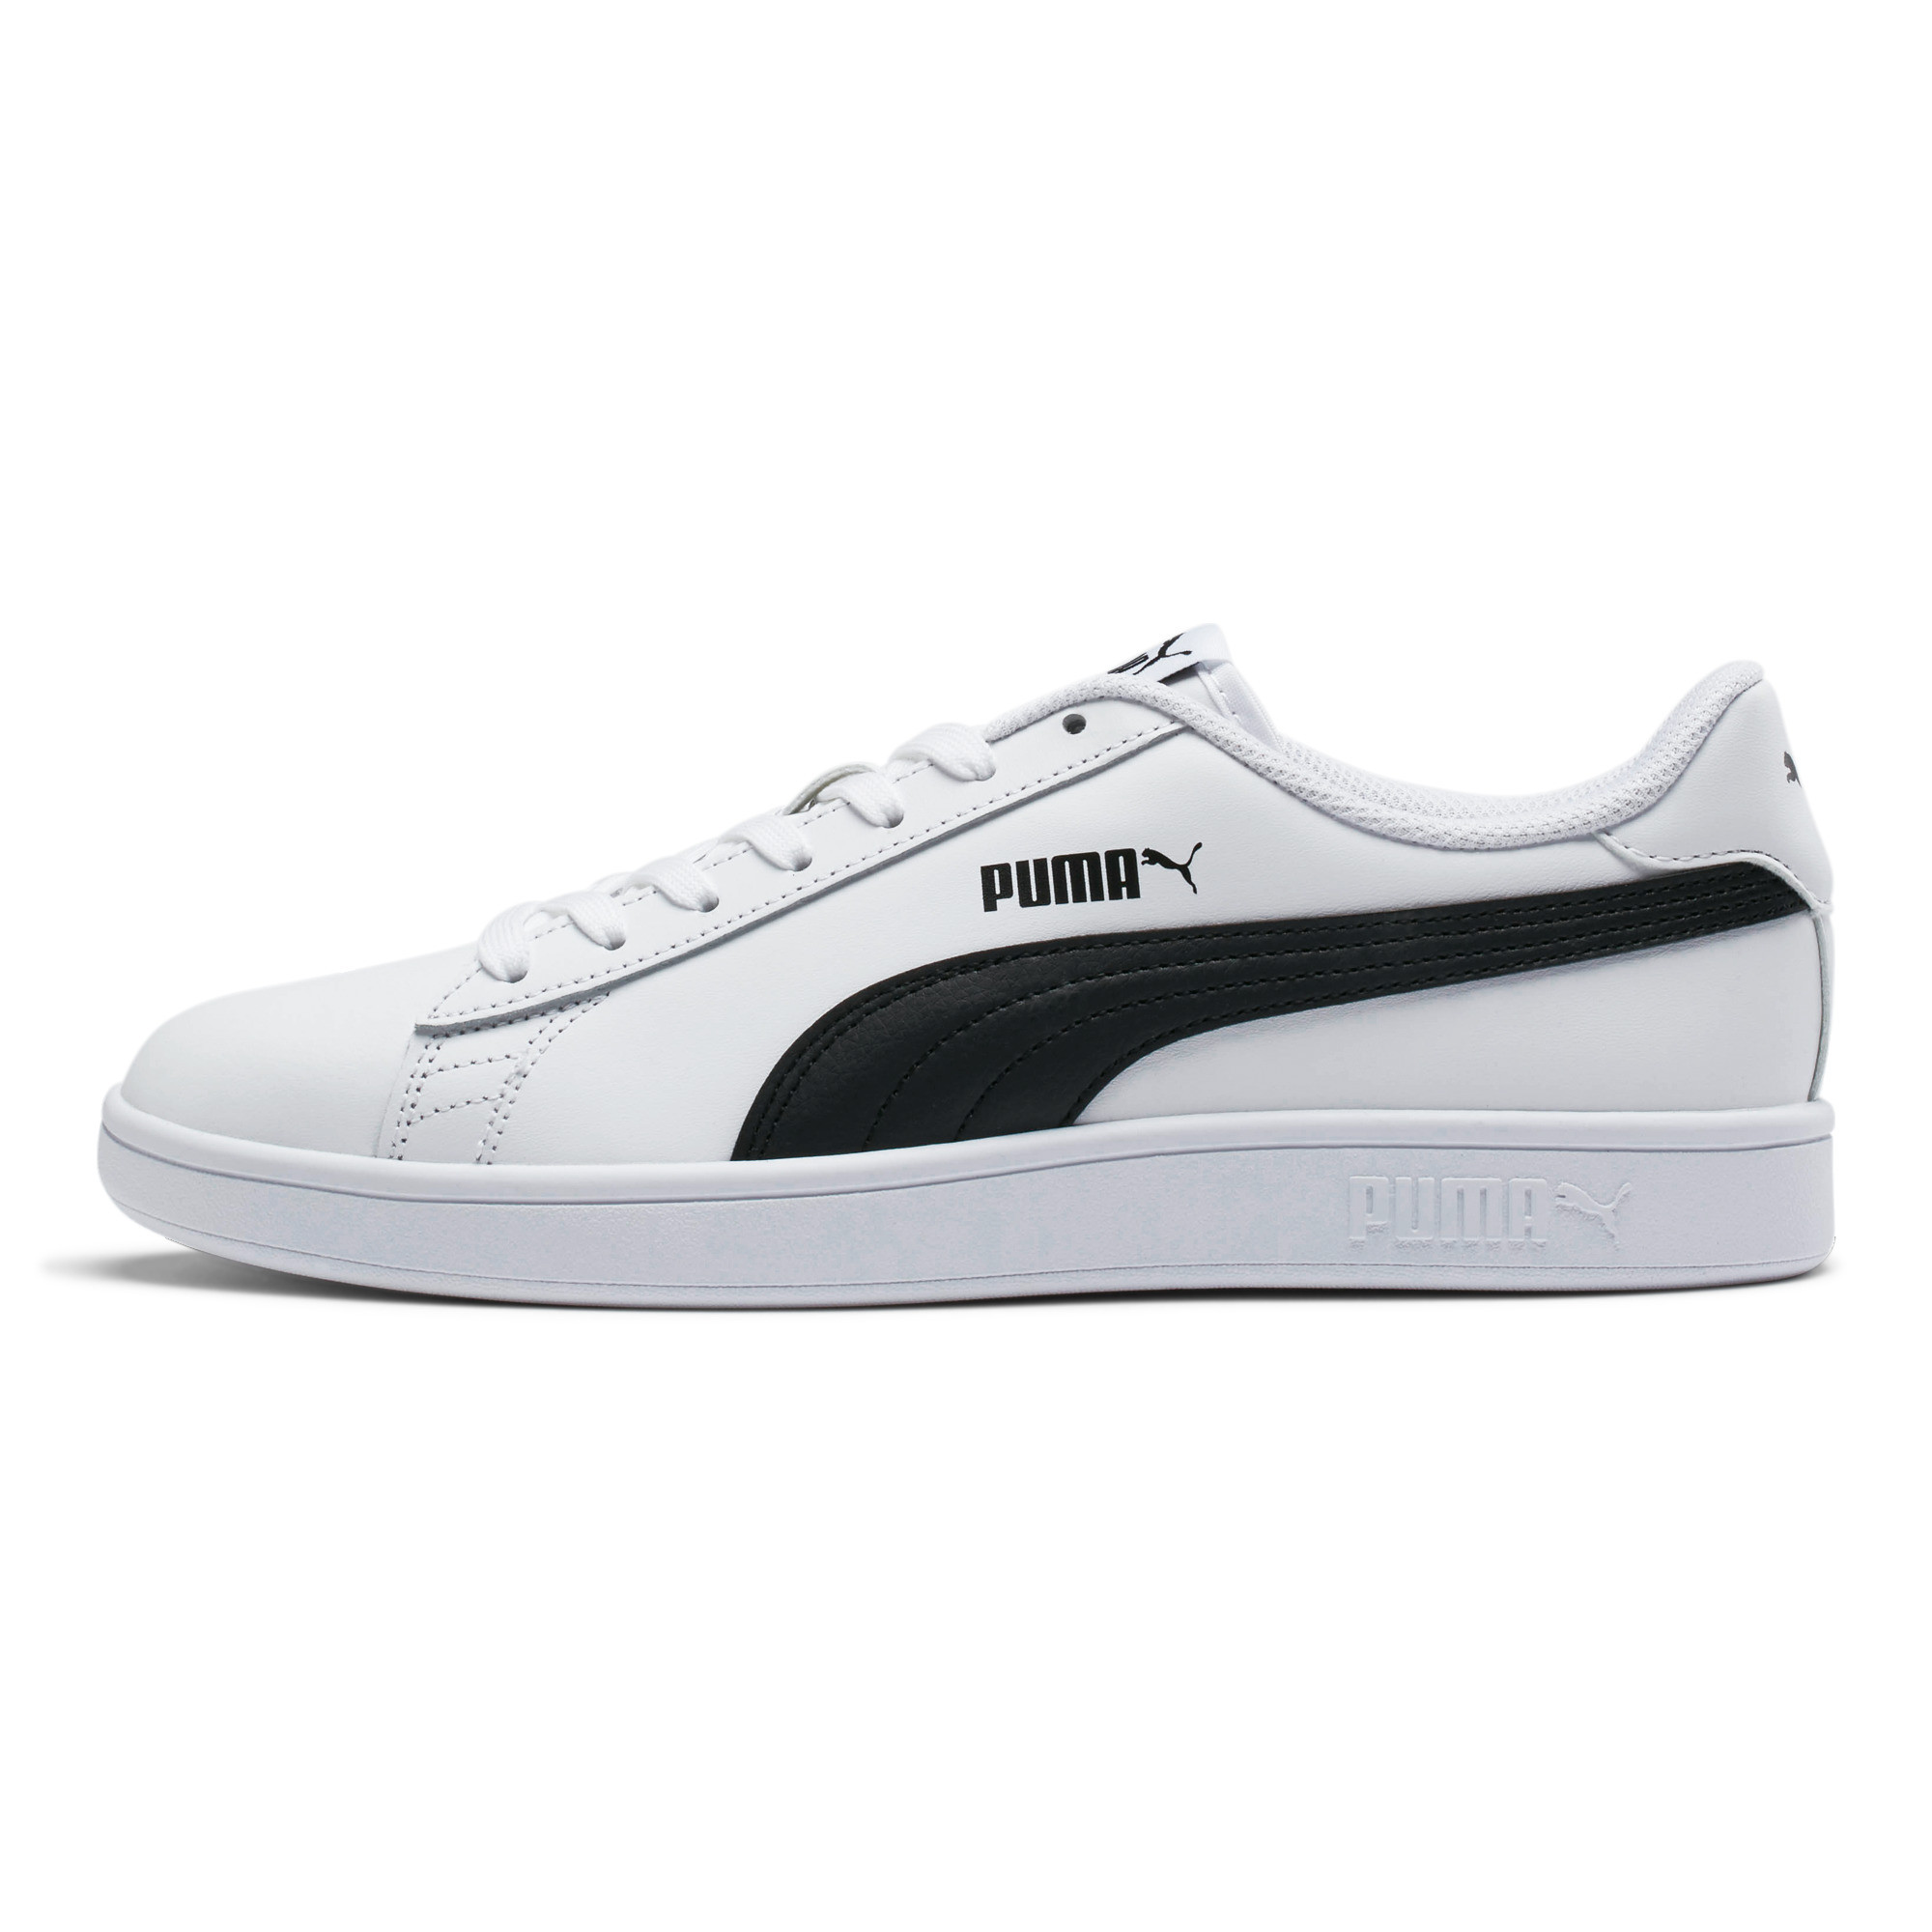 PUMA-PUMA-Smash-v2-Men-039-s-Sneakers-Men-Shoe-Basics thumbnail 19